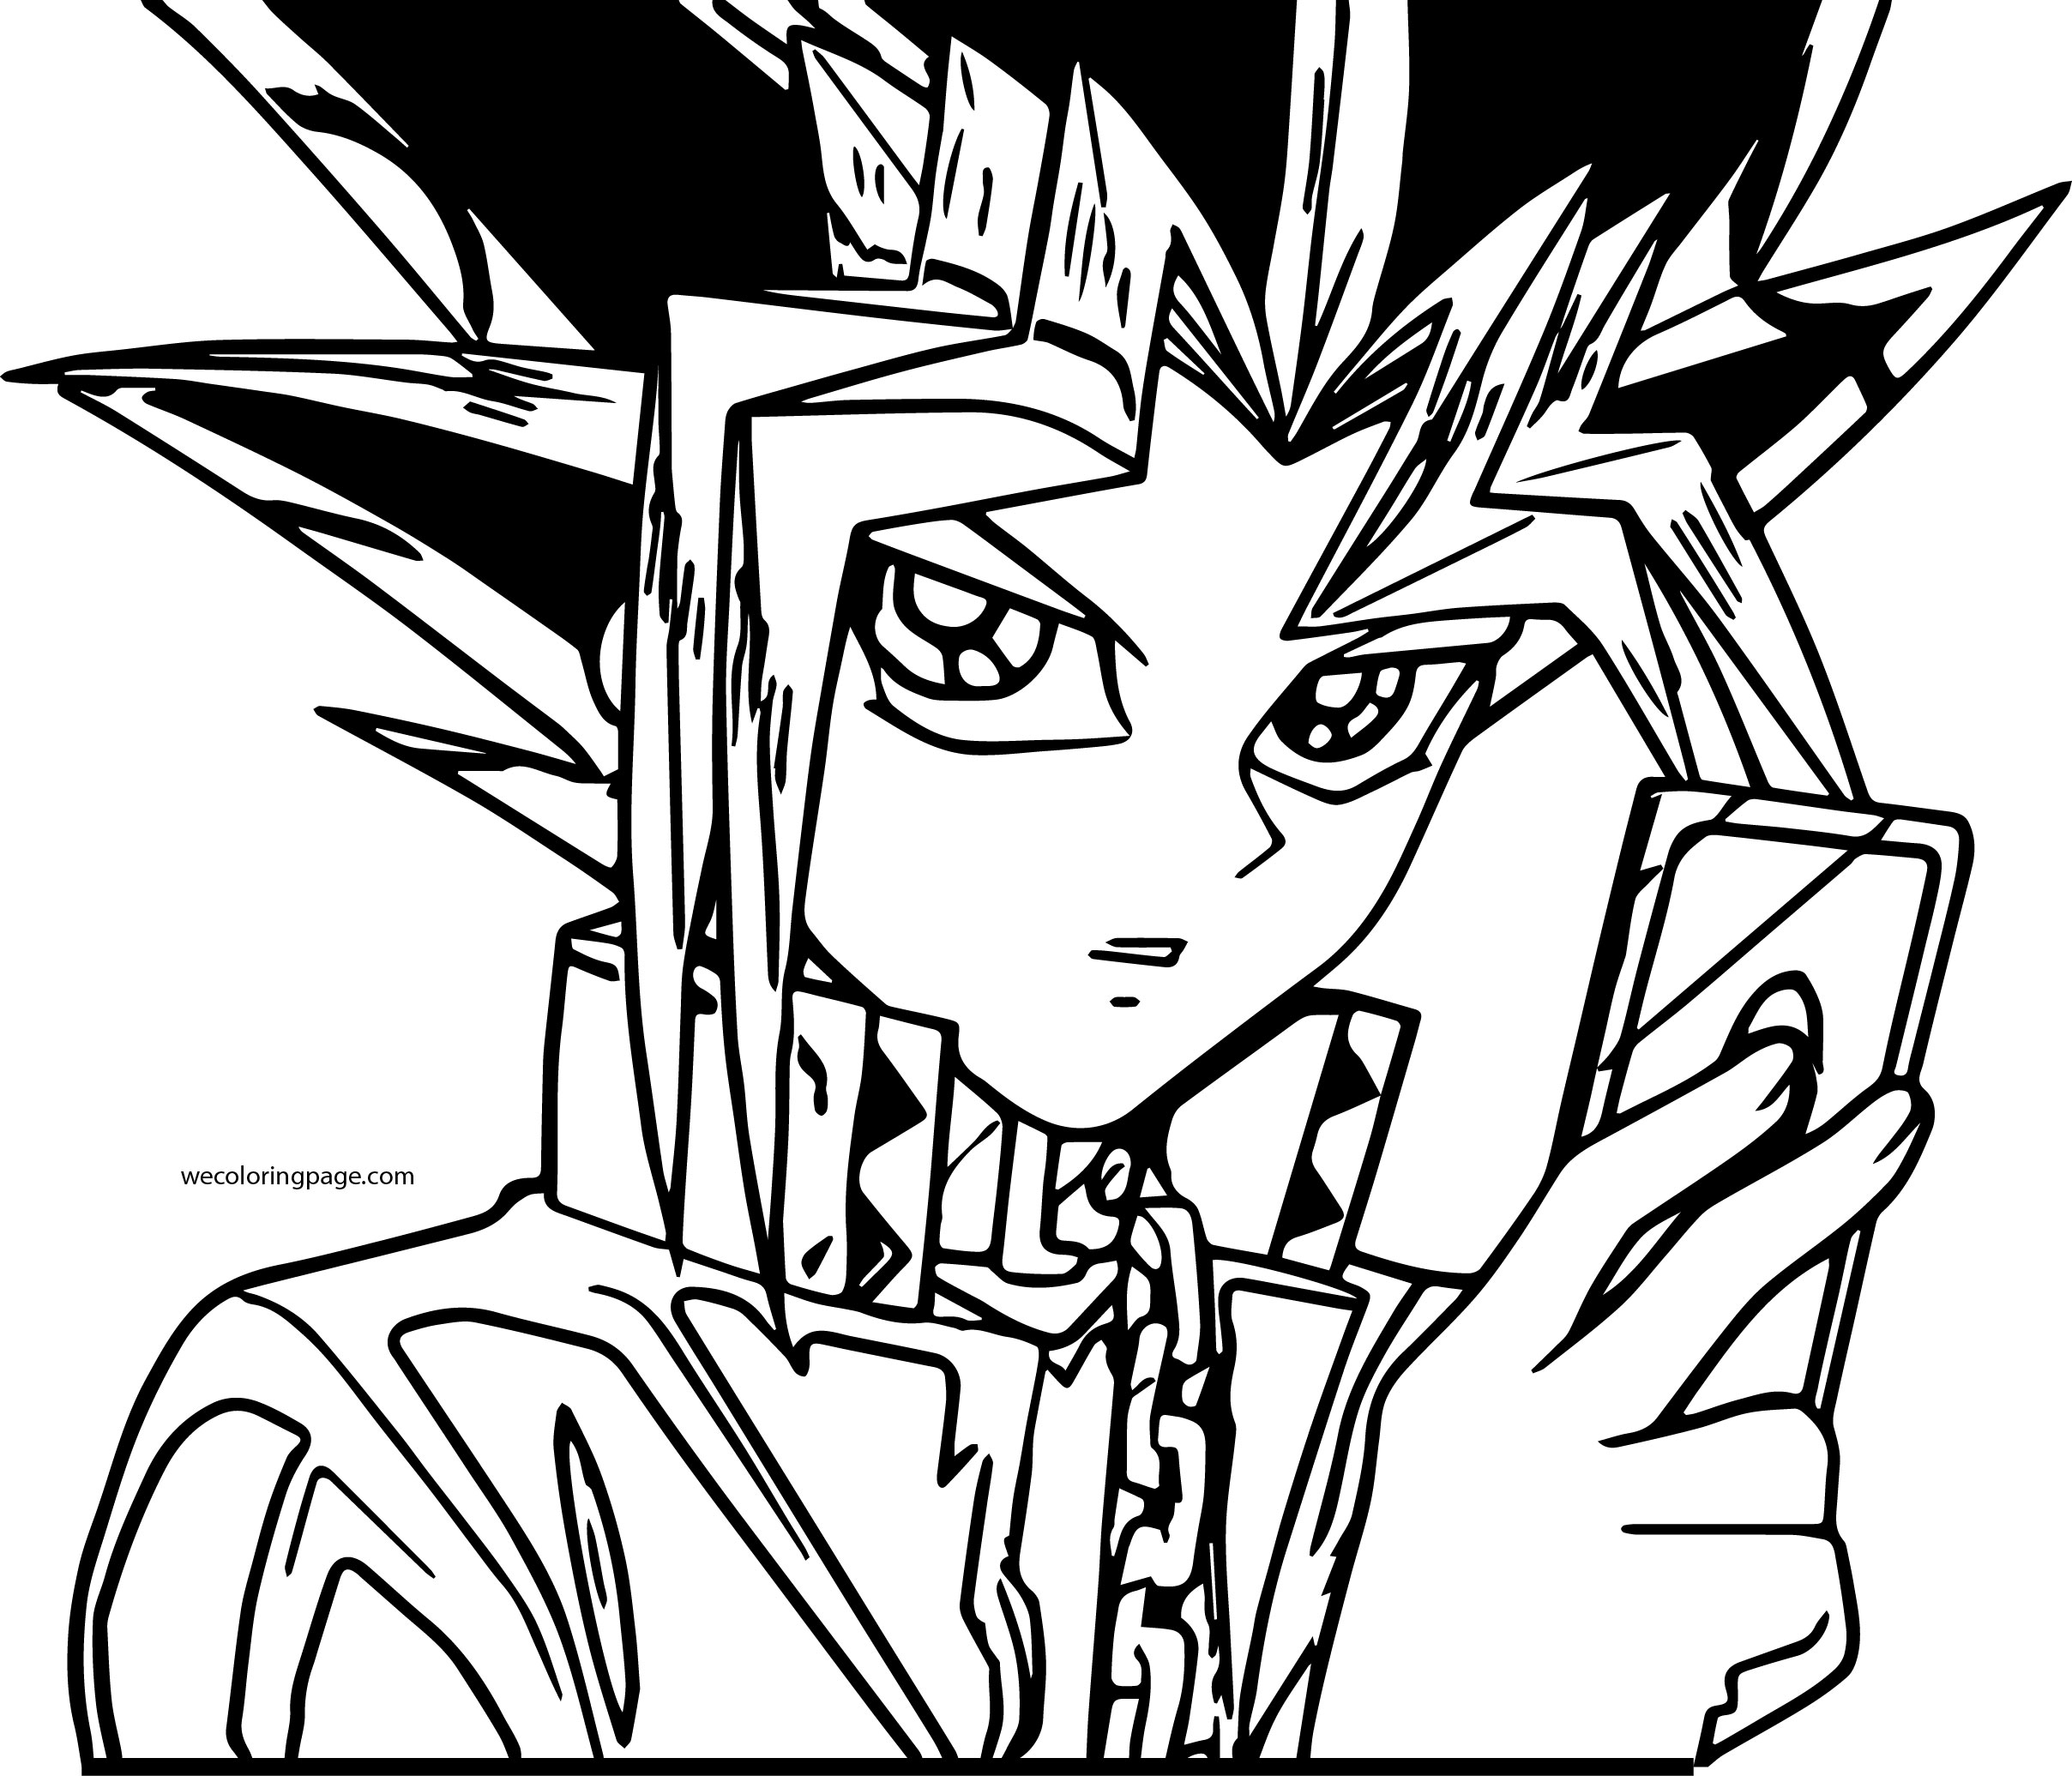 Yu Gi Oh Card Game Coloring Page